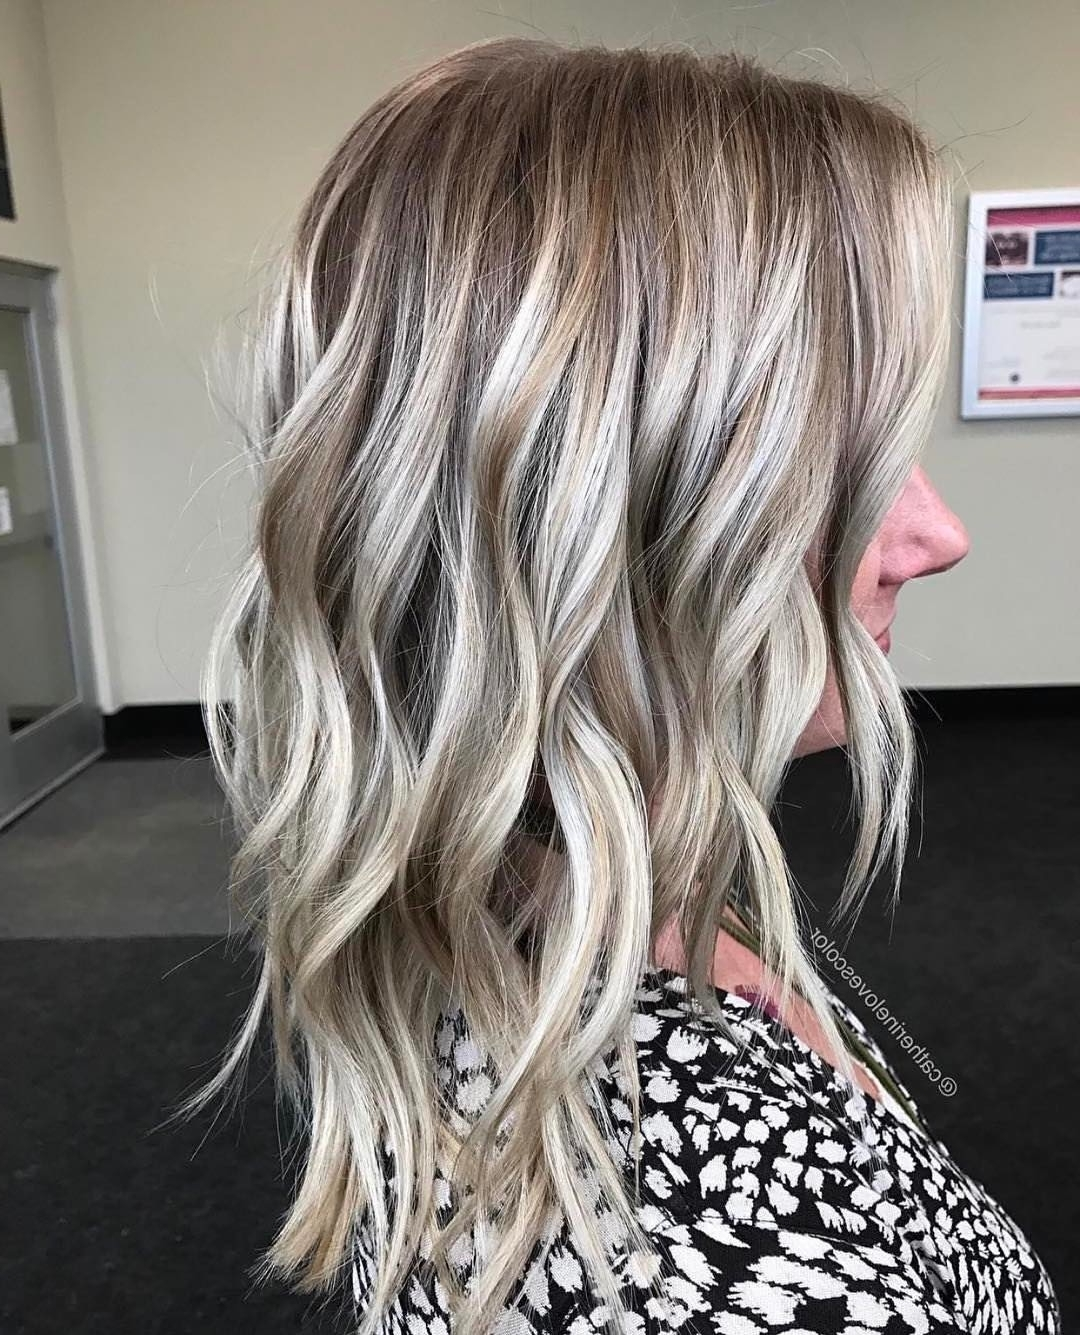 Trendy Dark Roots And Icy Cool Ends Blonde Hairstyles With Regard To 20 Adorable Ash Blonde Hairstyles To Try: Hair Color Ideas (View 15 of 20)